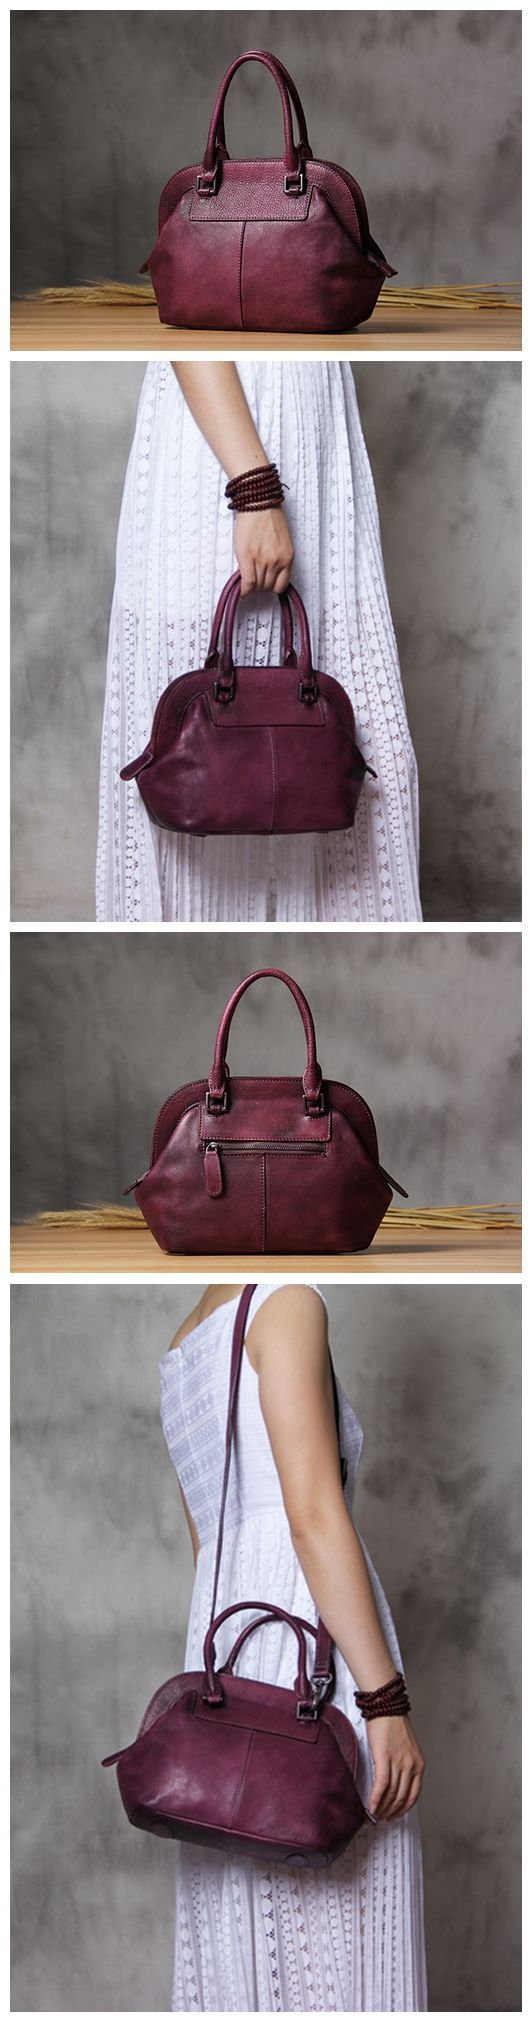 Handmade Genuine Leather Women's Fashion Tote Handbag Shoulder Bag Messenger in Rose Red 14120